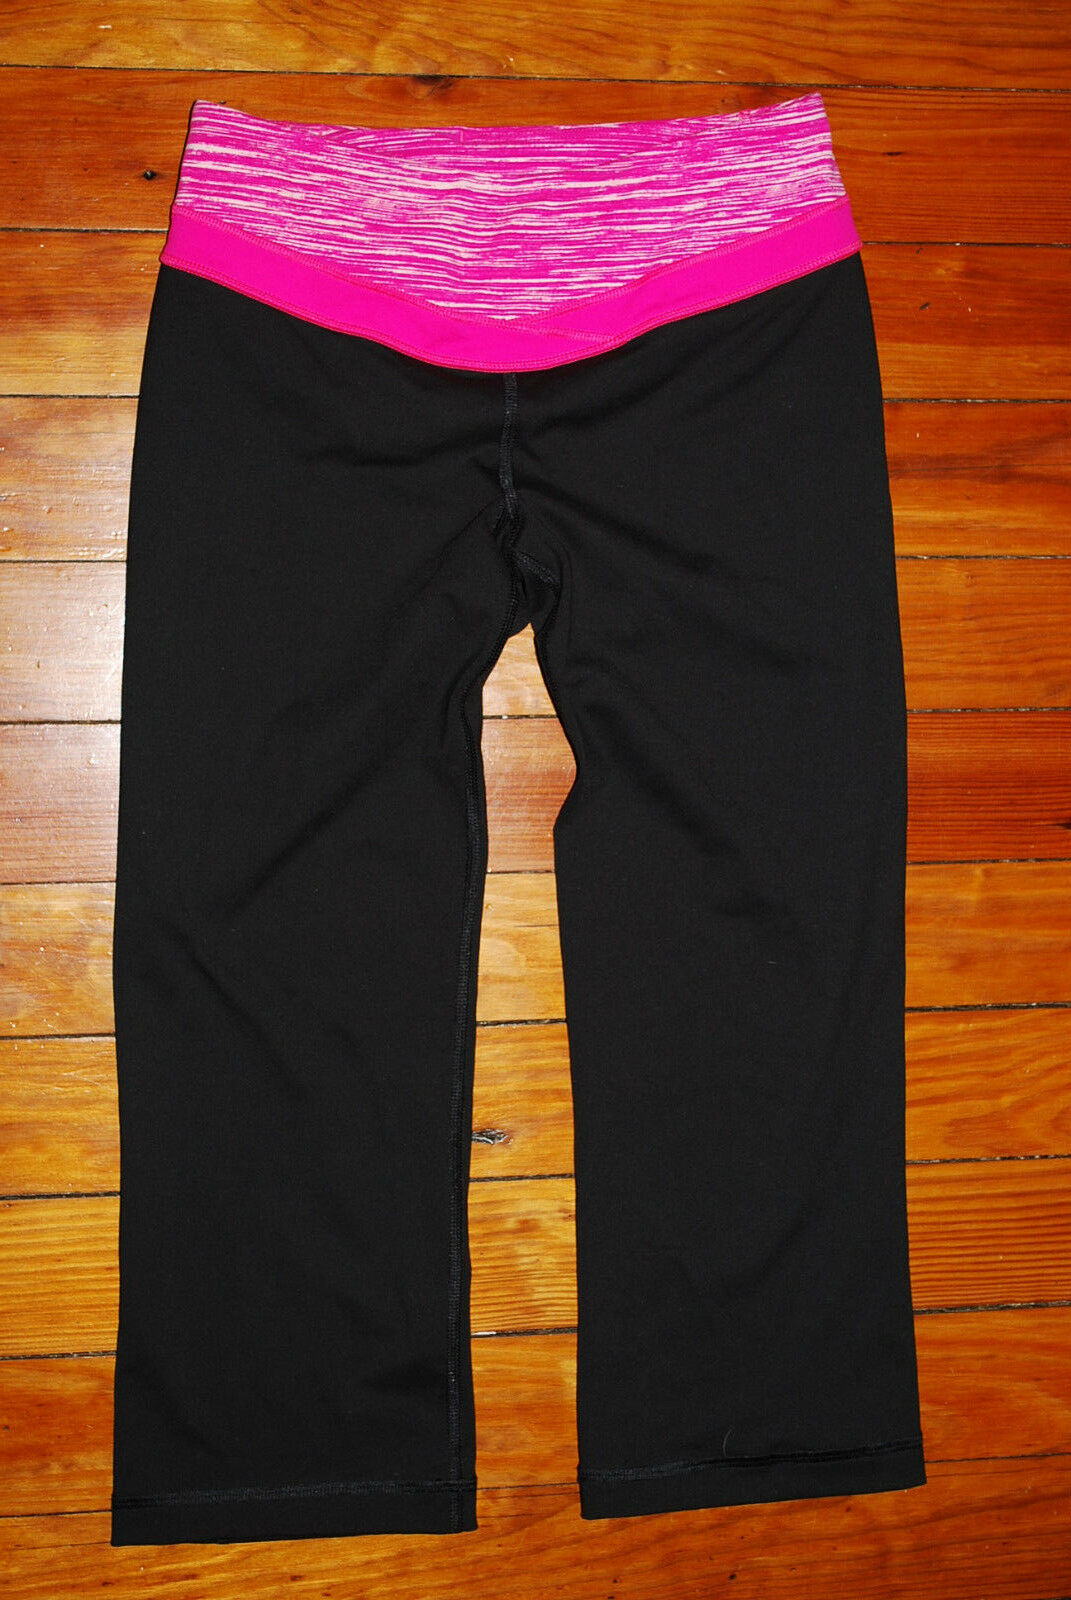 Women's Victoria's Secret VSX Supermodel Pink Capri Leggings (X-Small)